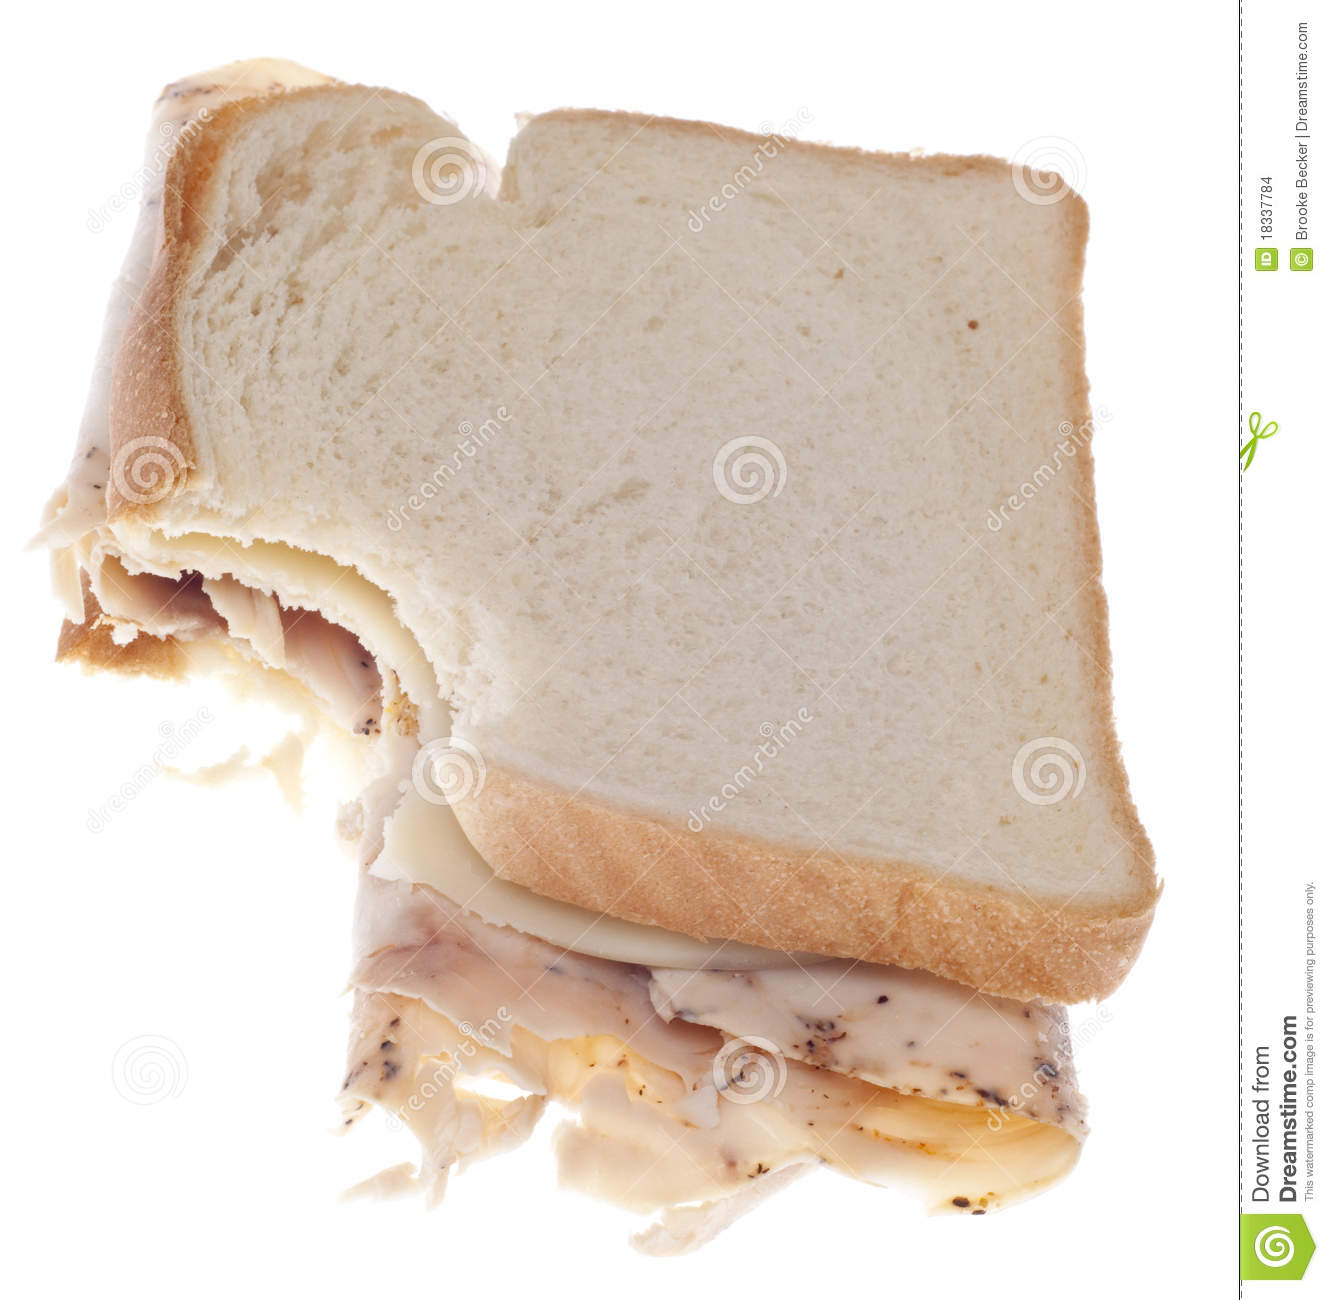 Stock Images  Healthy Turkey SandwichHealthy Turkey Sandwich